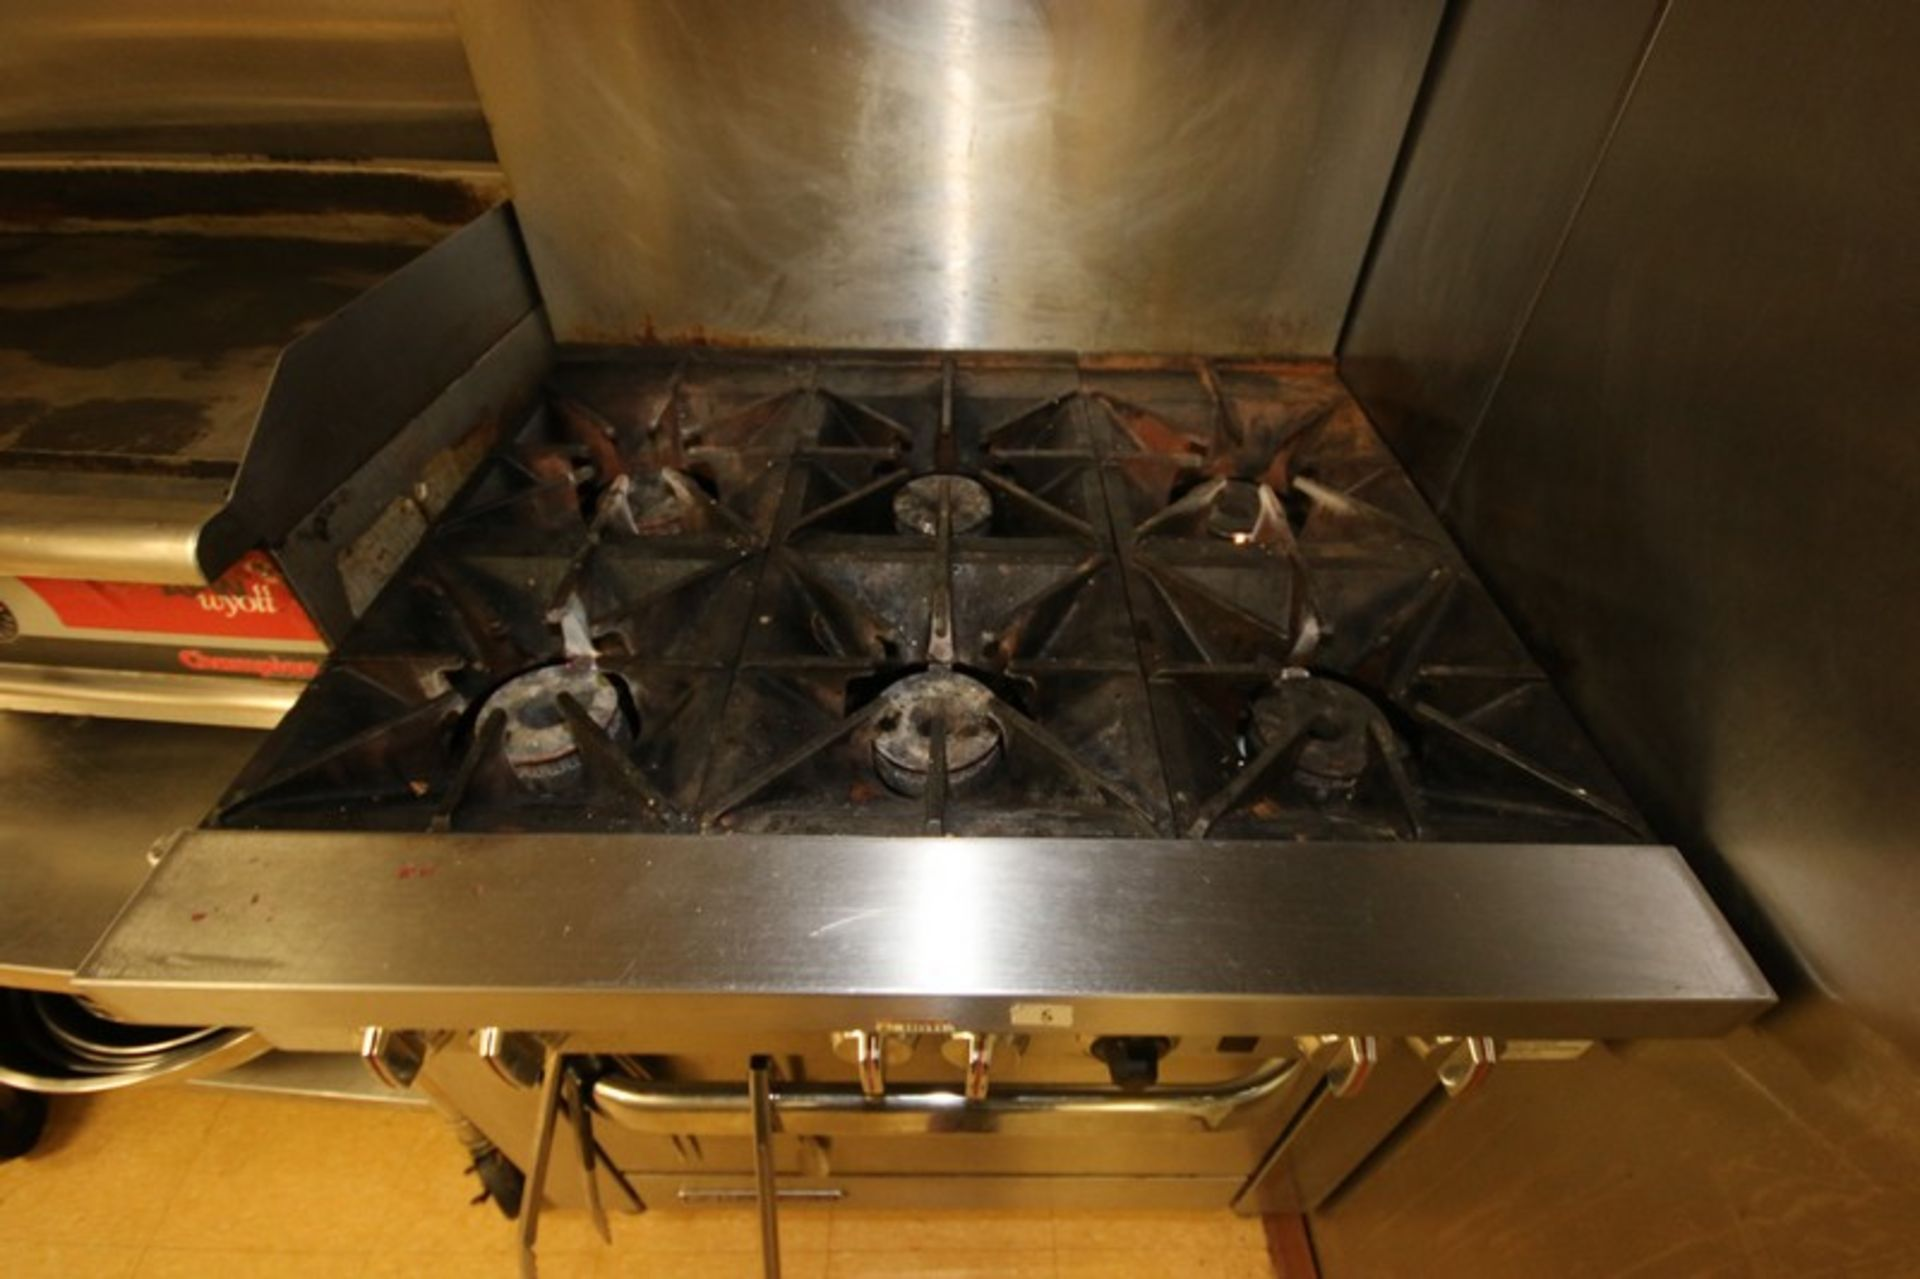 Southbend S/S 6-Burner Stove Top & Oven, S/N 10K13111, with S/S Top Shelf, Mounted on Portable Frame - Image 4 of 5